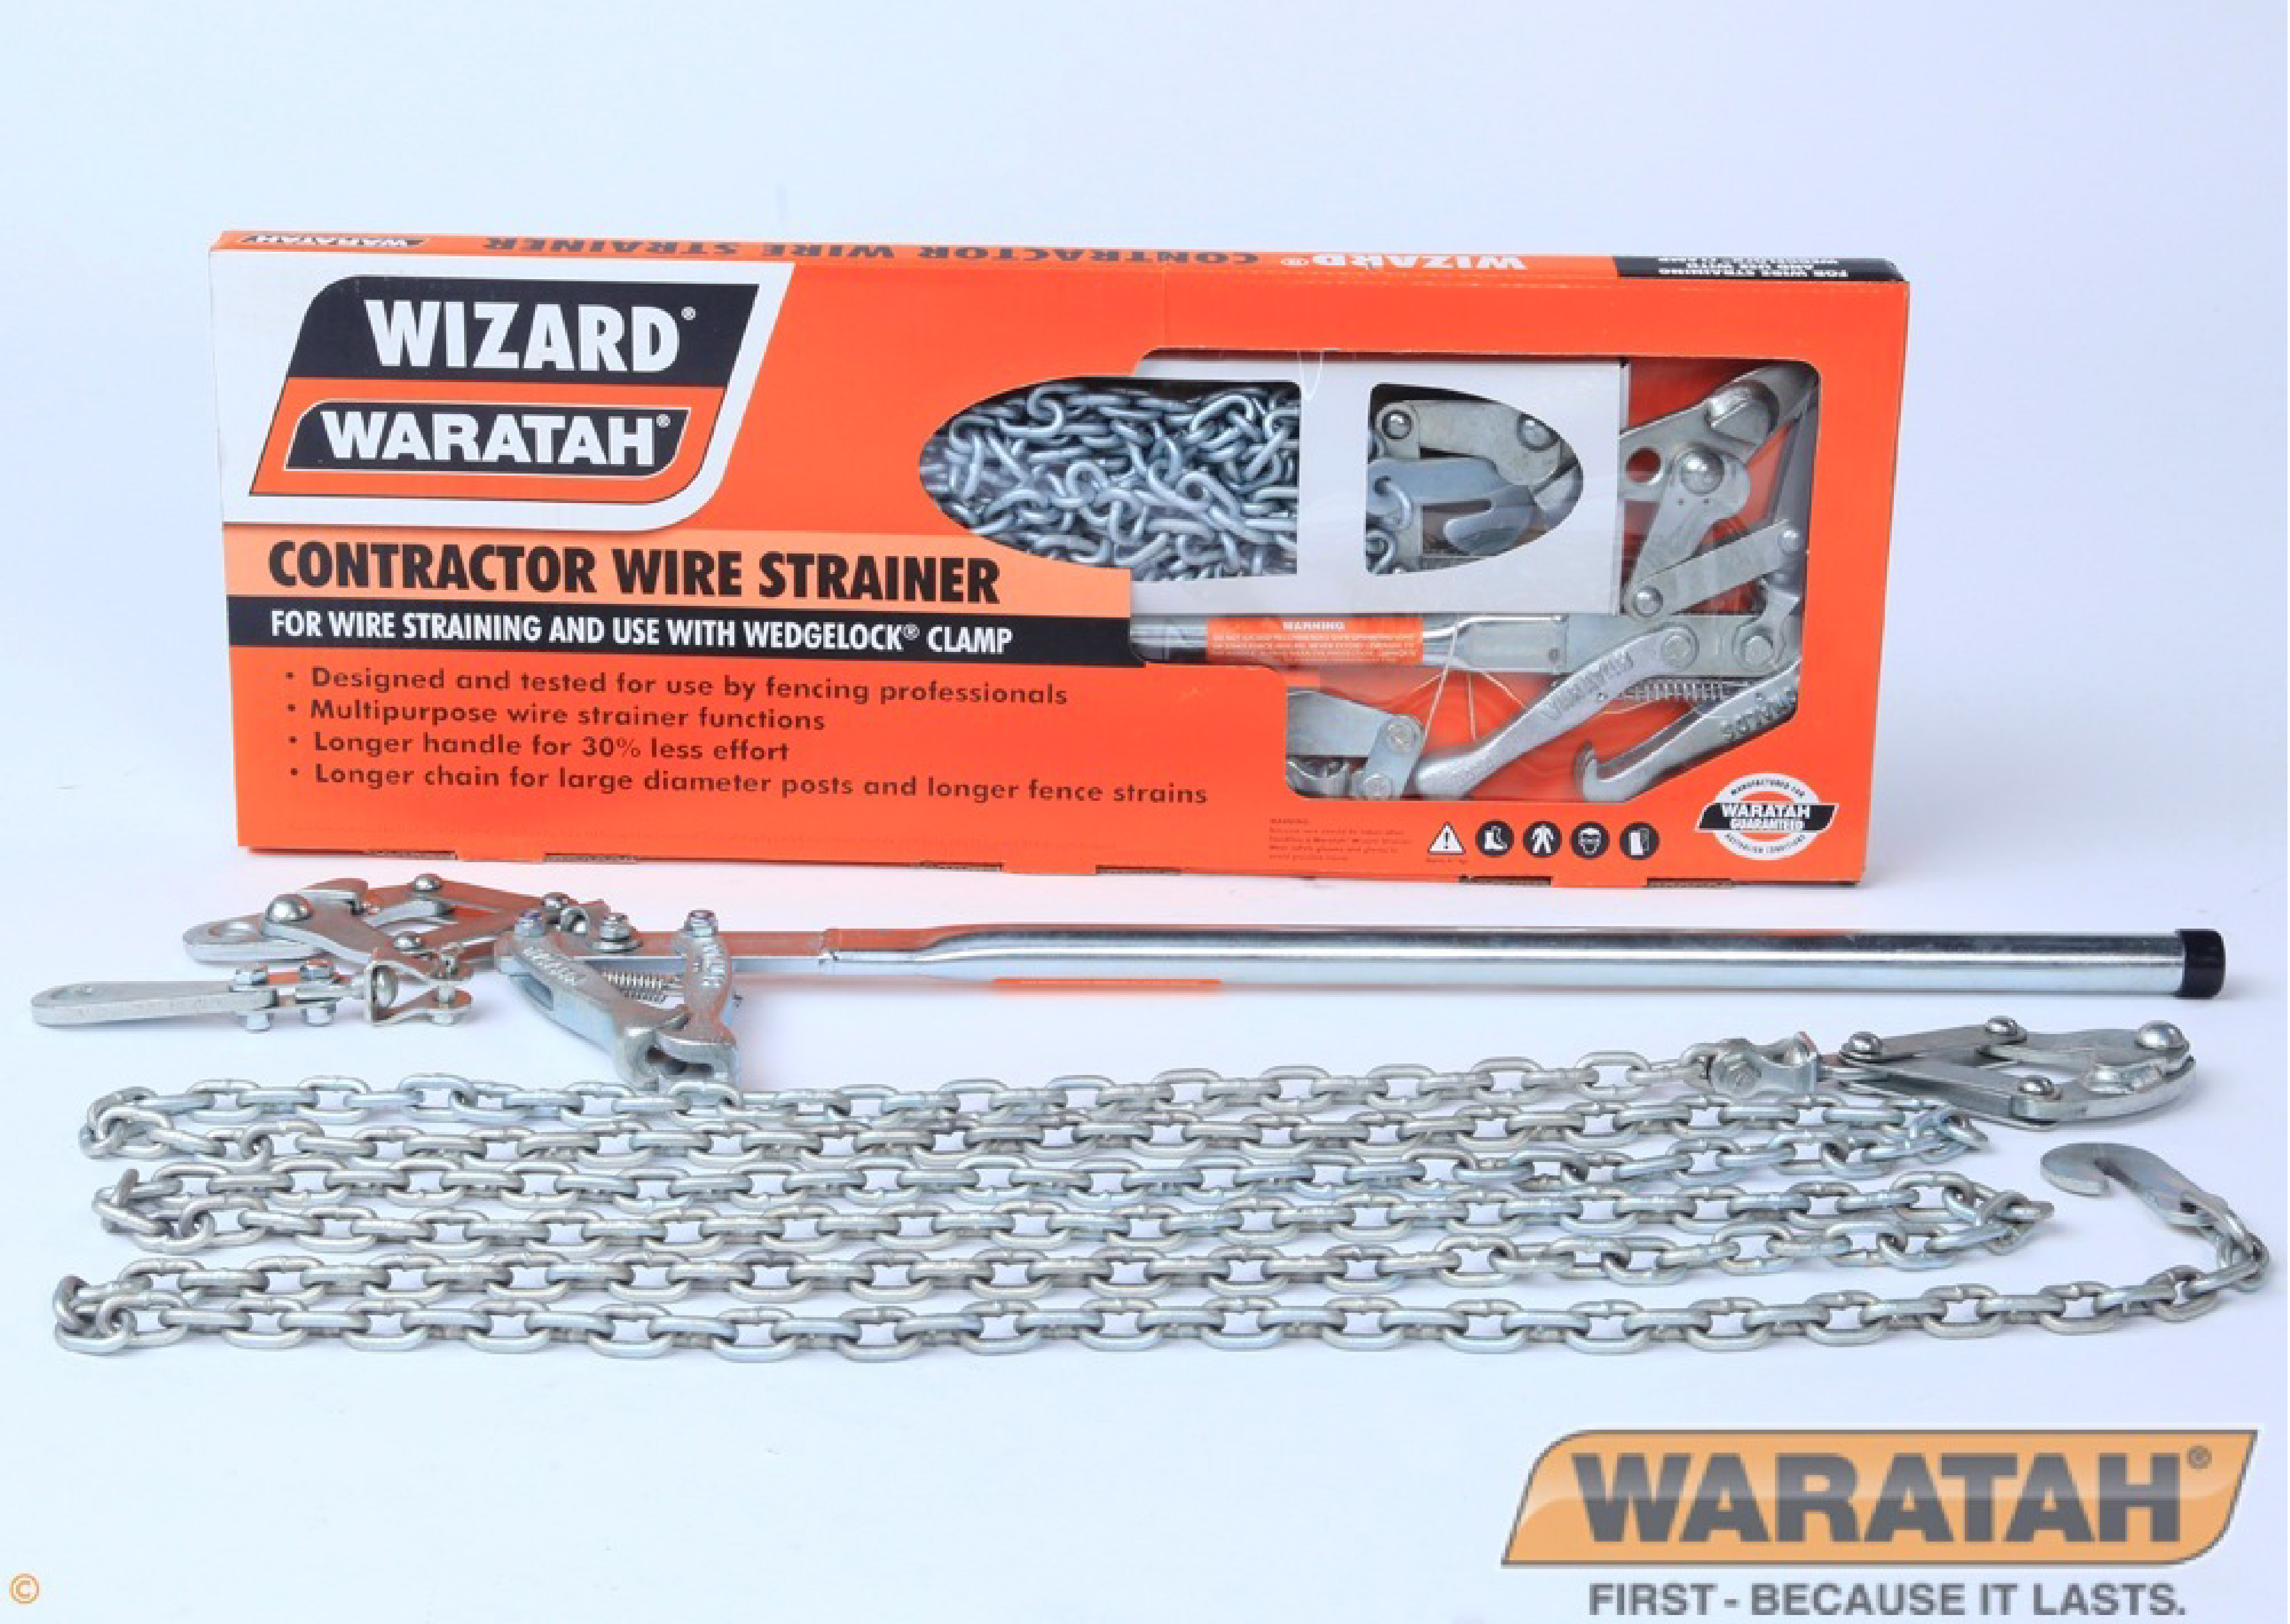 Wizard contractor wire strainer | Waratah fencing tools